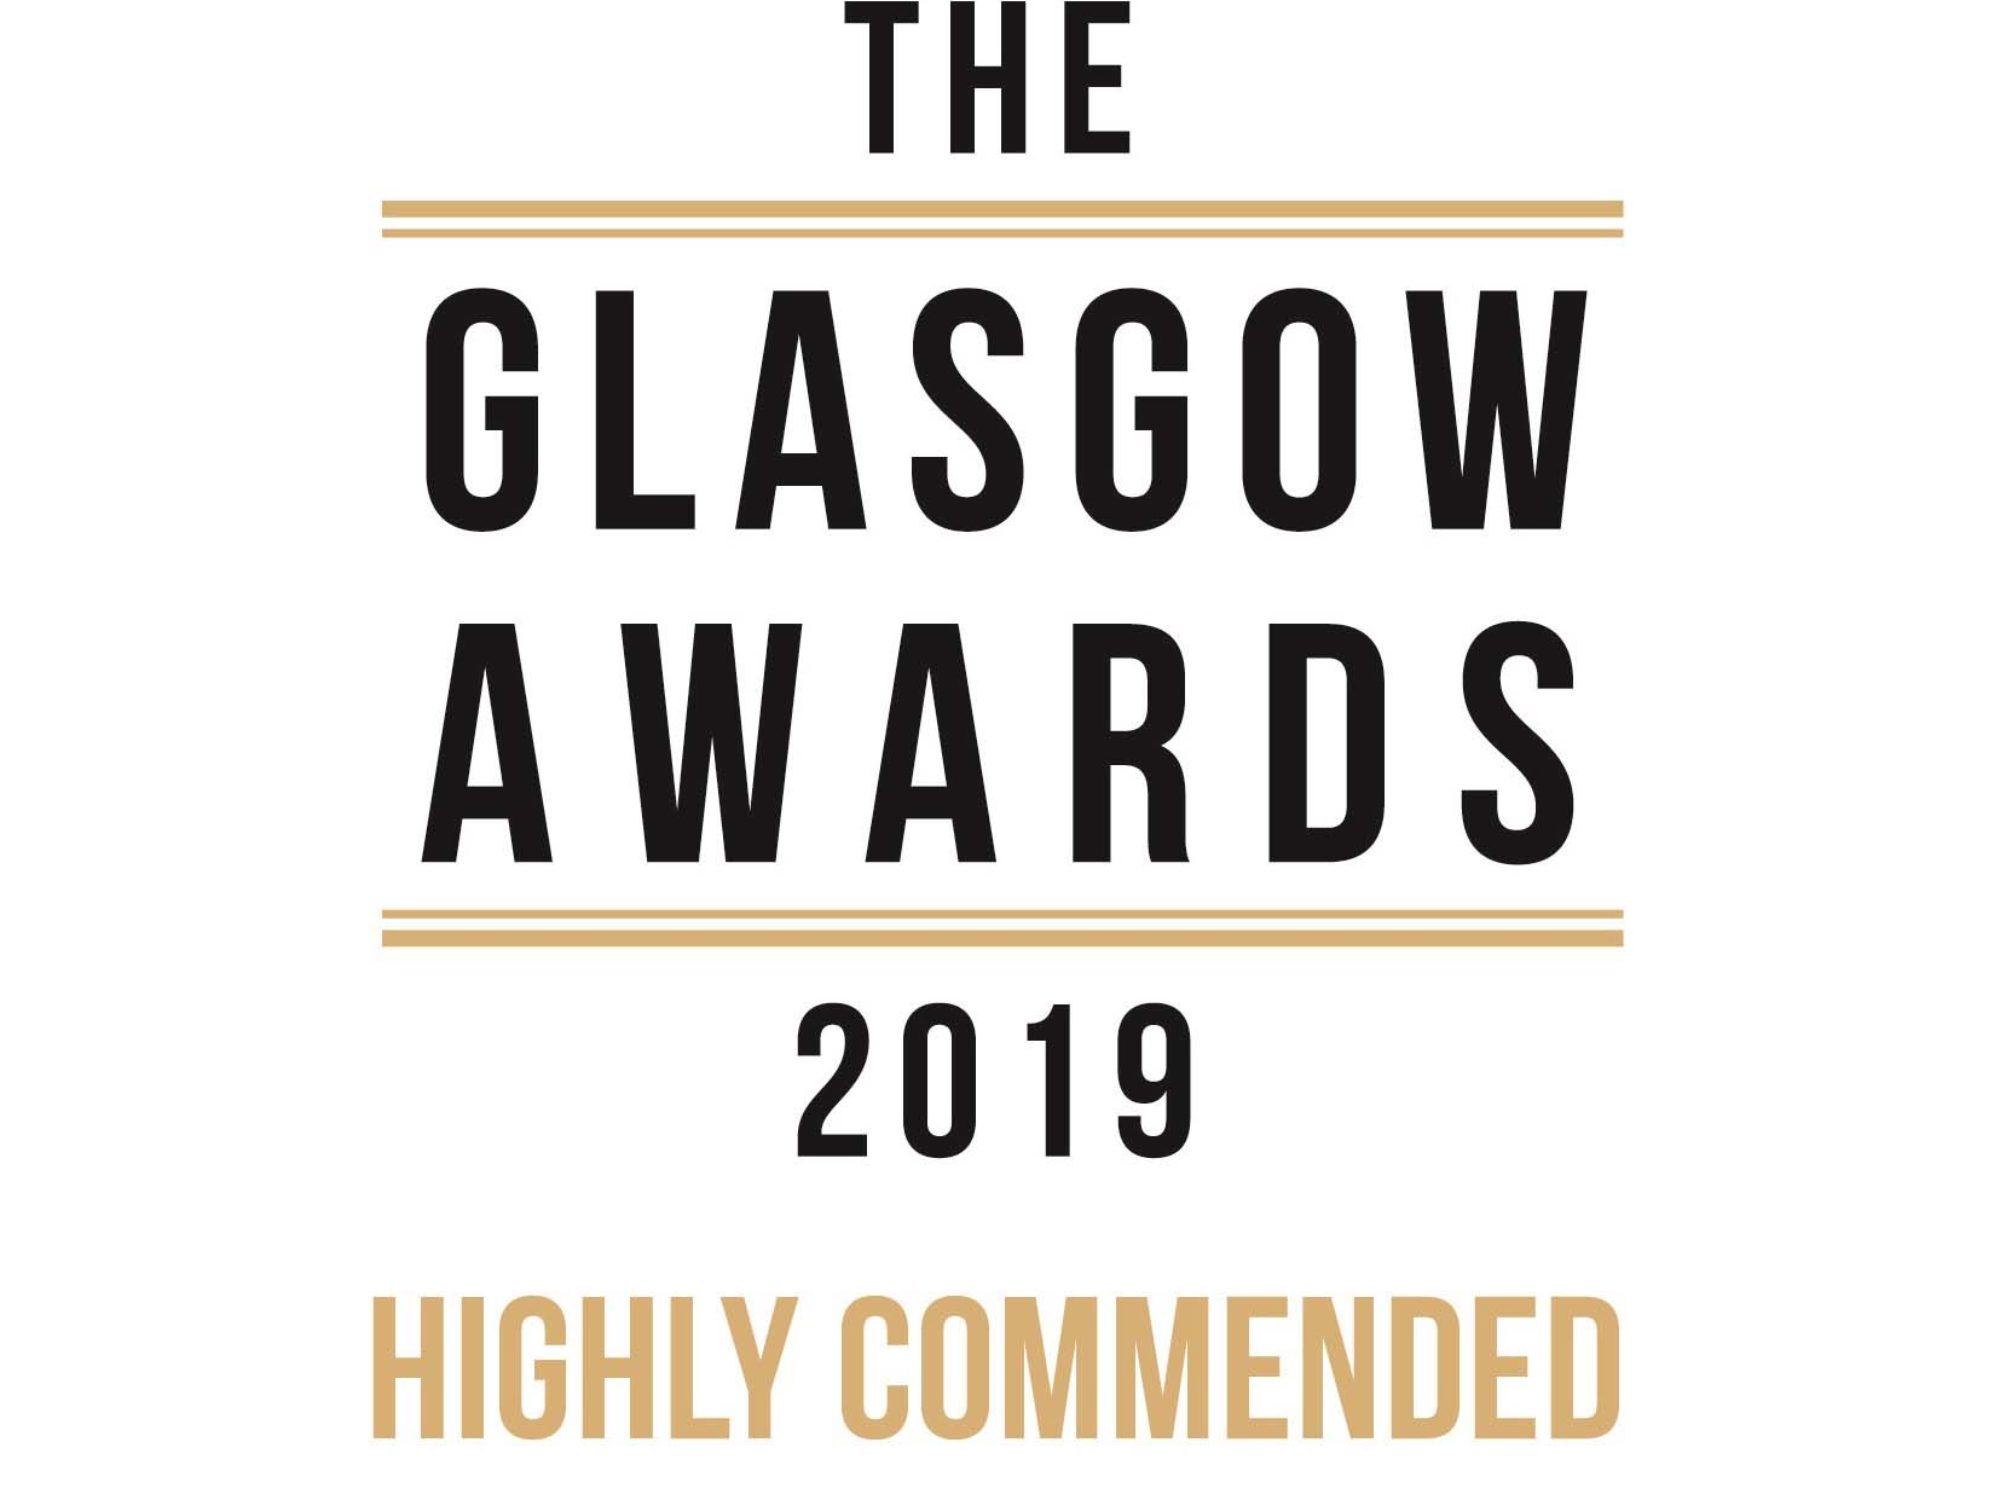 GGG win Highly Recommended Certificate at Glasgow Awards 2019